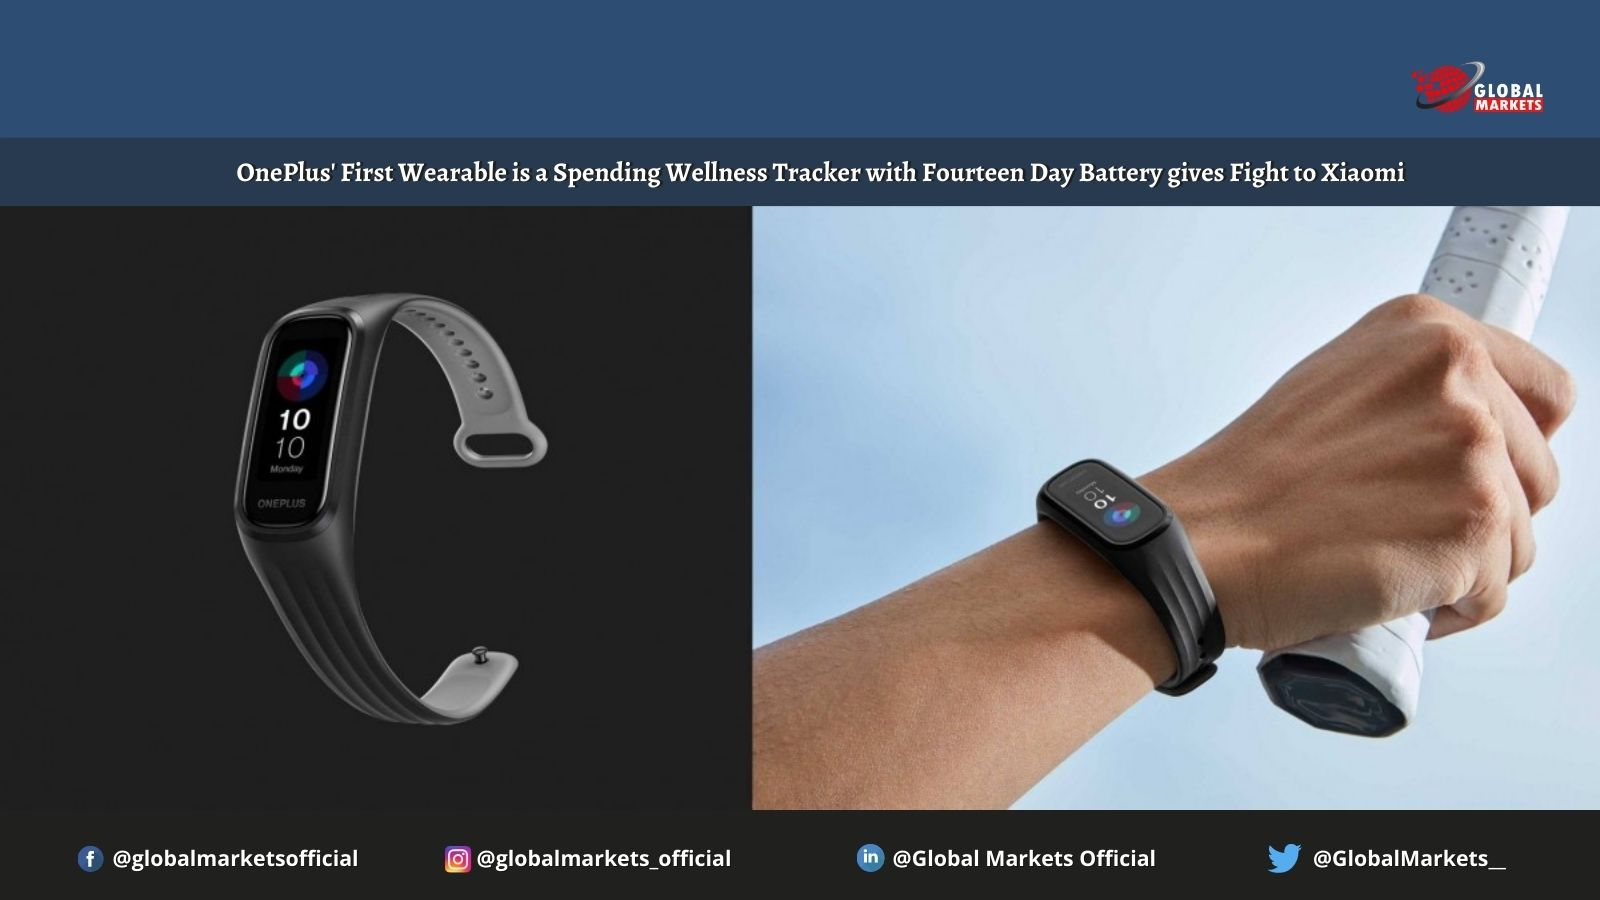 OnePlus' First Wearable is a Spending Wellness Tracker with Fourteen Day Battery